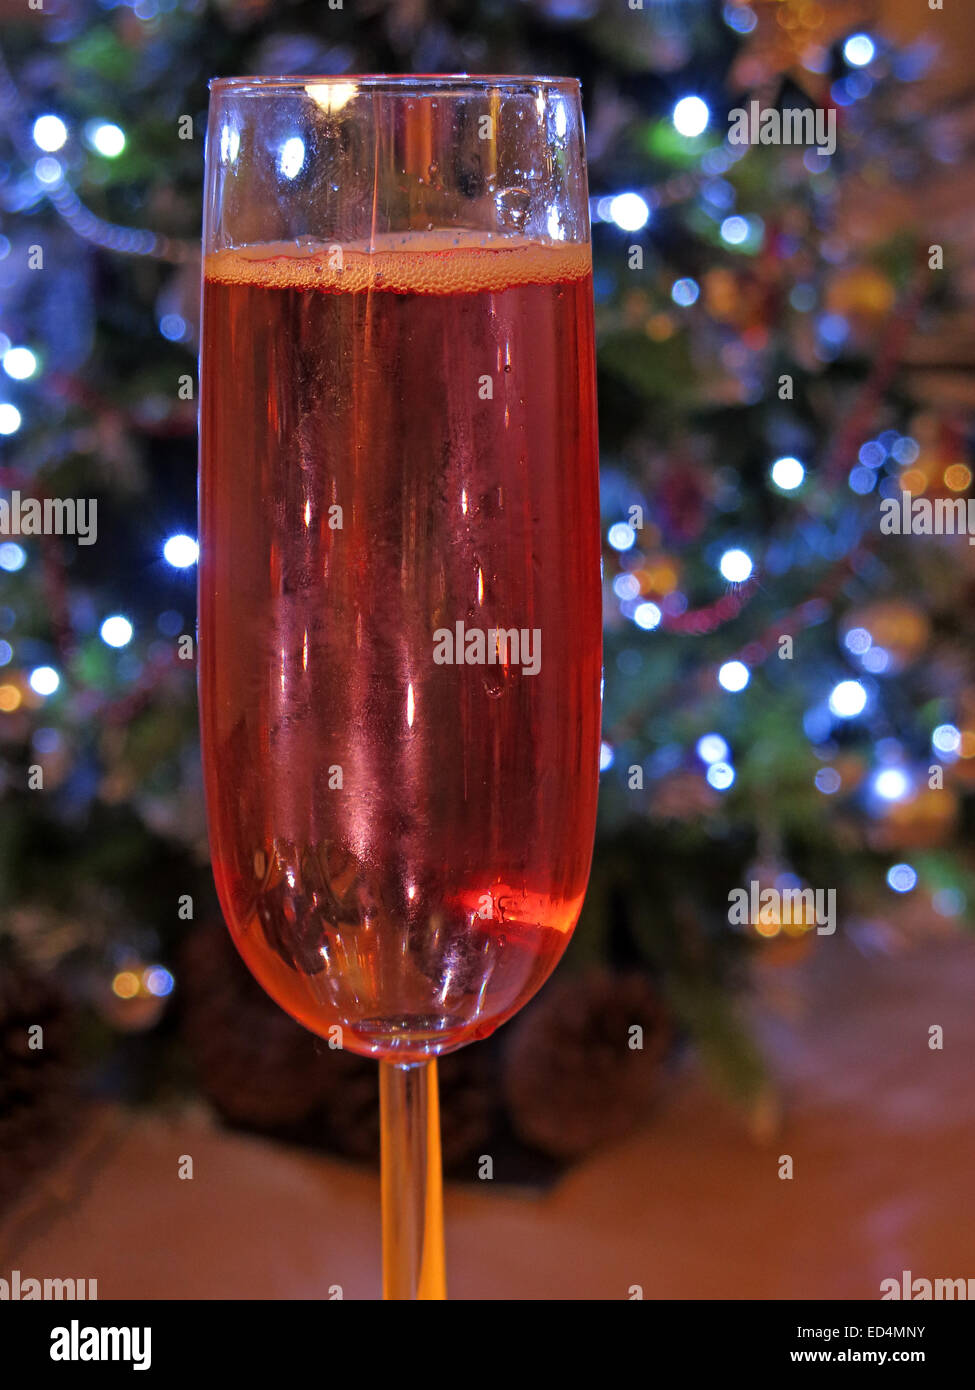 Xmas glitter white red rose wine at Christmas,in,front,of,tree,of,decorations,alcohol,booze,boozing,dangerous,sclerosis,of,liver,cancer,anti-drink,driving,campaign,police,dont,drink,and,drive,get,behind,wheel,of,a,car,vehicle,glitter,offences,offence,horrible,hangover,hangovers,health,hazards,Gotonysmith,2015,2016,2017,2018,2019,2020,2021,full,glass,of,fizz,abuse,full,glass,of,fizz